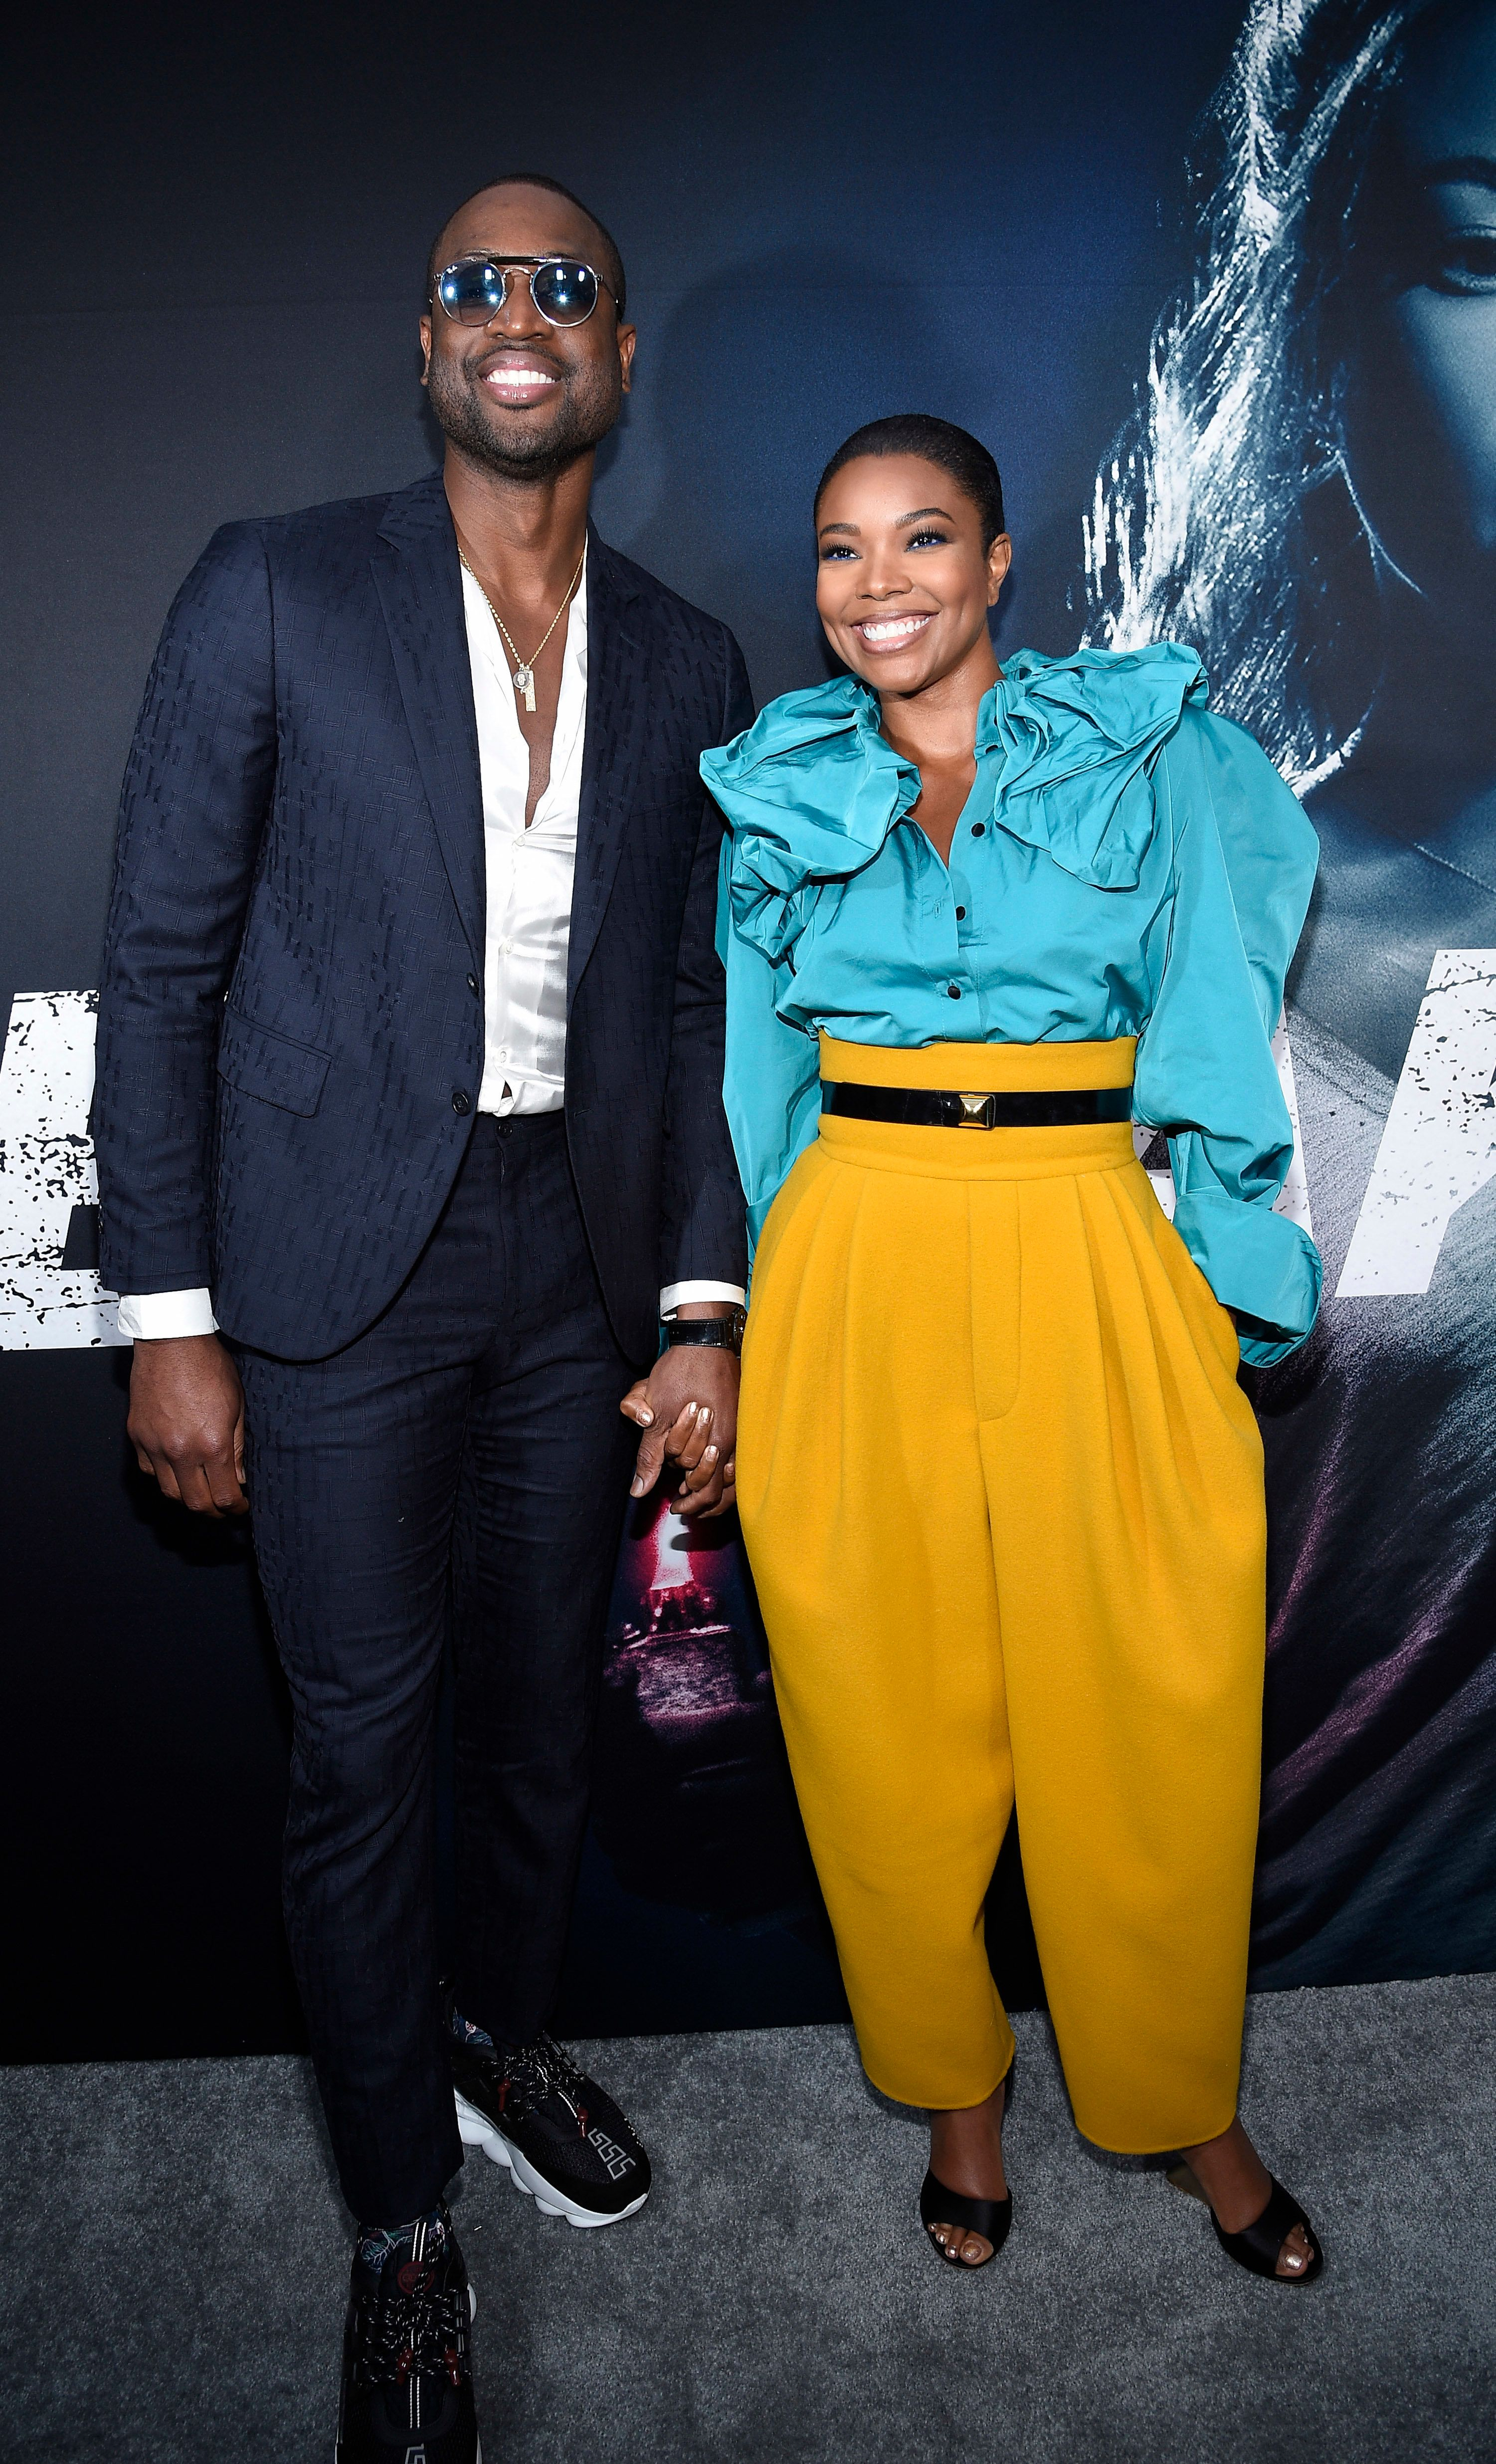 HOLLYWOOD, CA - MAY 01: Cast member Gabrielle Union and her husband basketball player for the Miami Heat Dwyane Wade arrive for Universal Pictures' special screening of the film 'Breaking In' at ArcLight Cinemas on May 1, 2018 in Hollywood, California. (Photo by Kevork Djansezian/Getty Images)